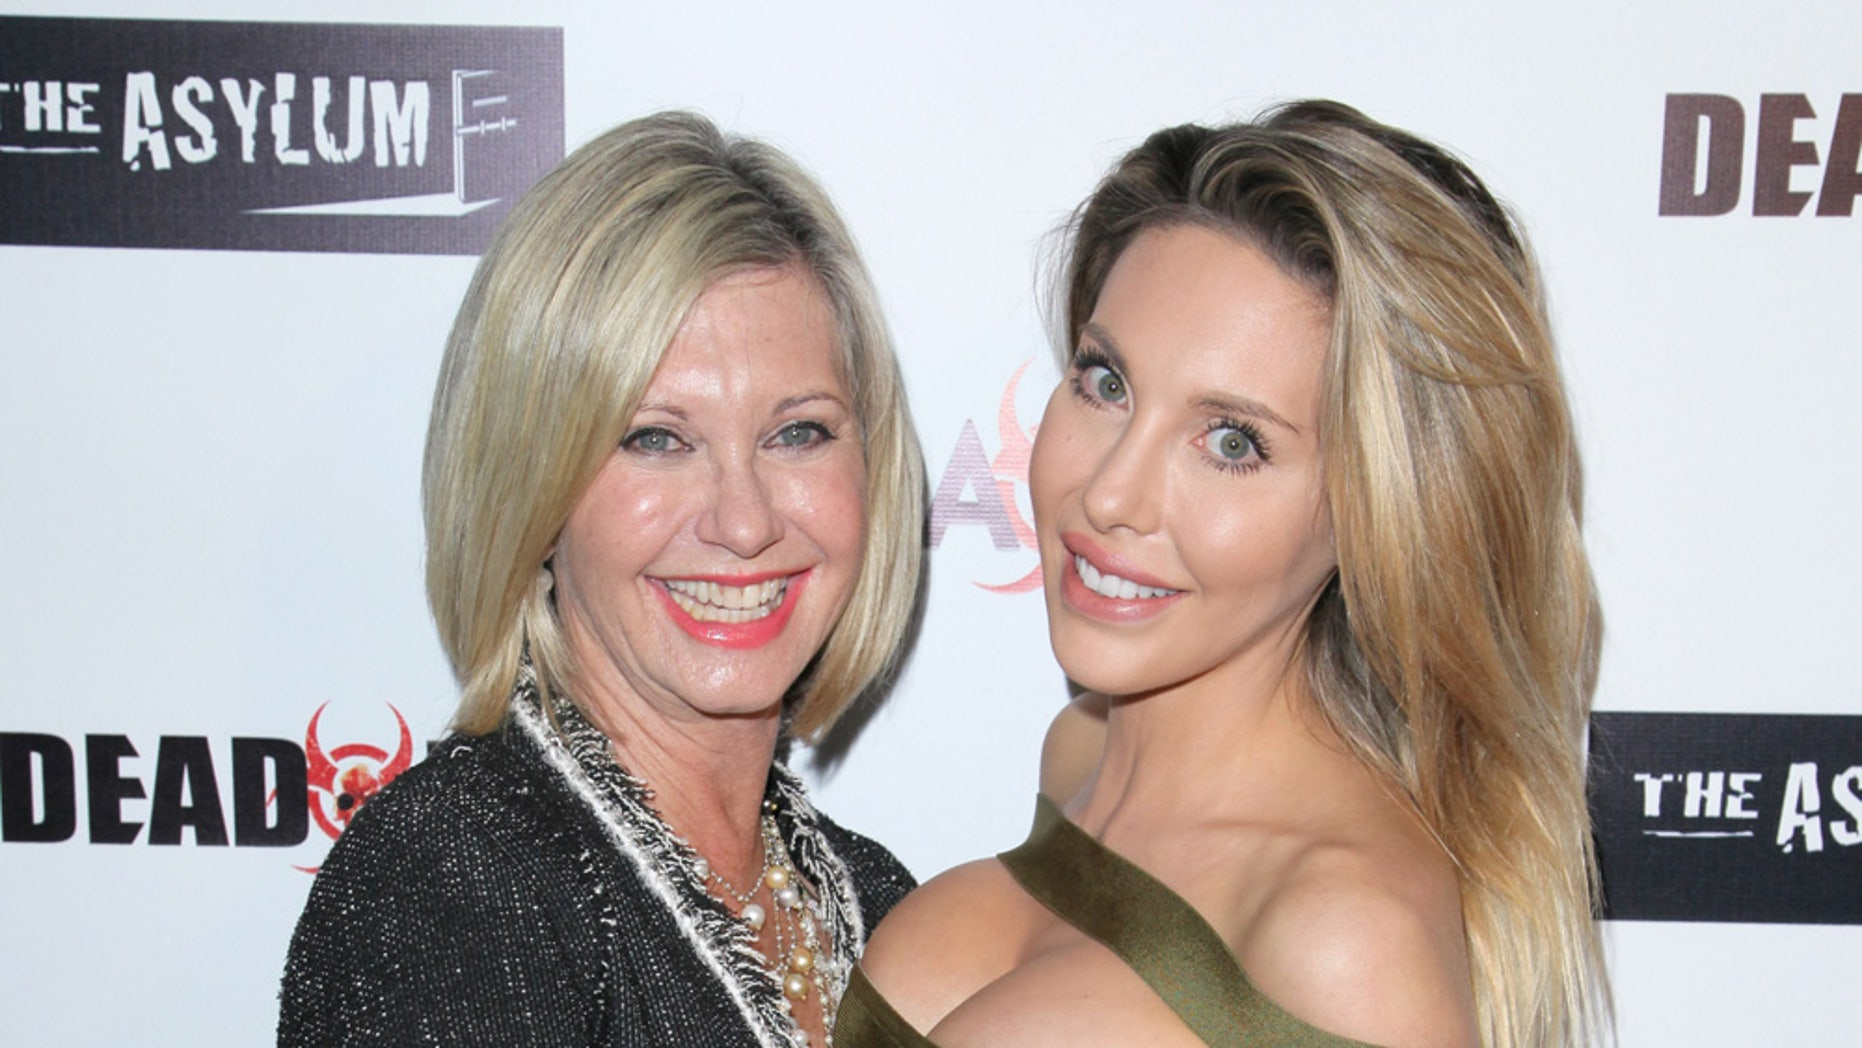 Singer Olivia Newton-John and her daughter Chloe Lattanzi on the red carpet for the Premiere of Syfy's 'Dead 7' at Harmony Gold on April 1, 2016 in Los Angeles.